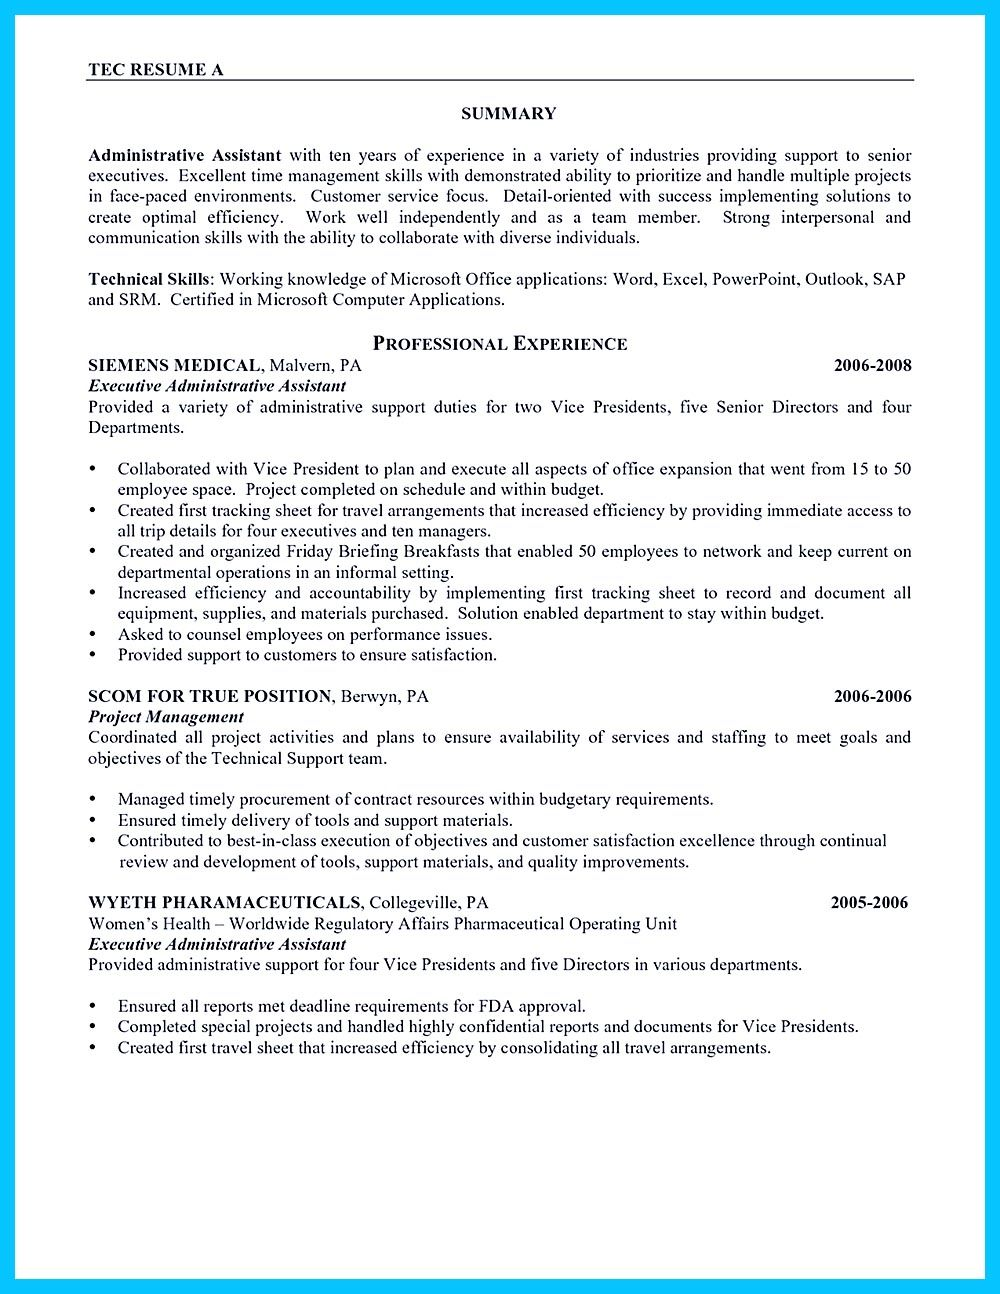 Entry Level Resume No Experience In Writing Entry Level Administrative Assistant Resume You Need To .